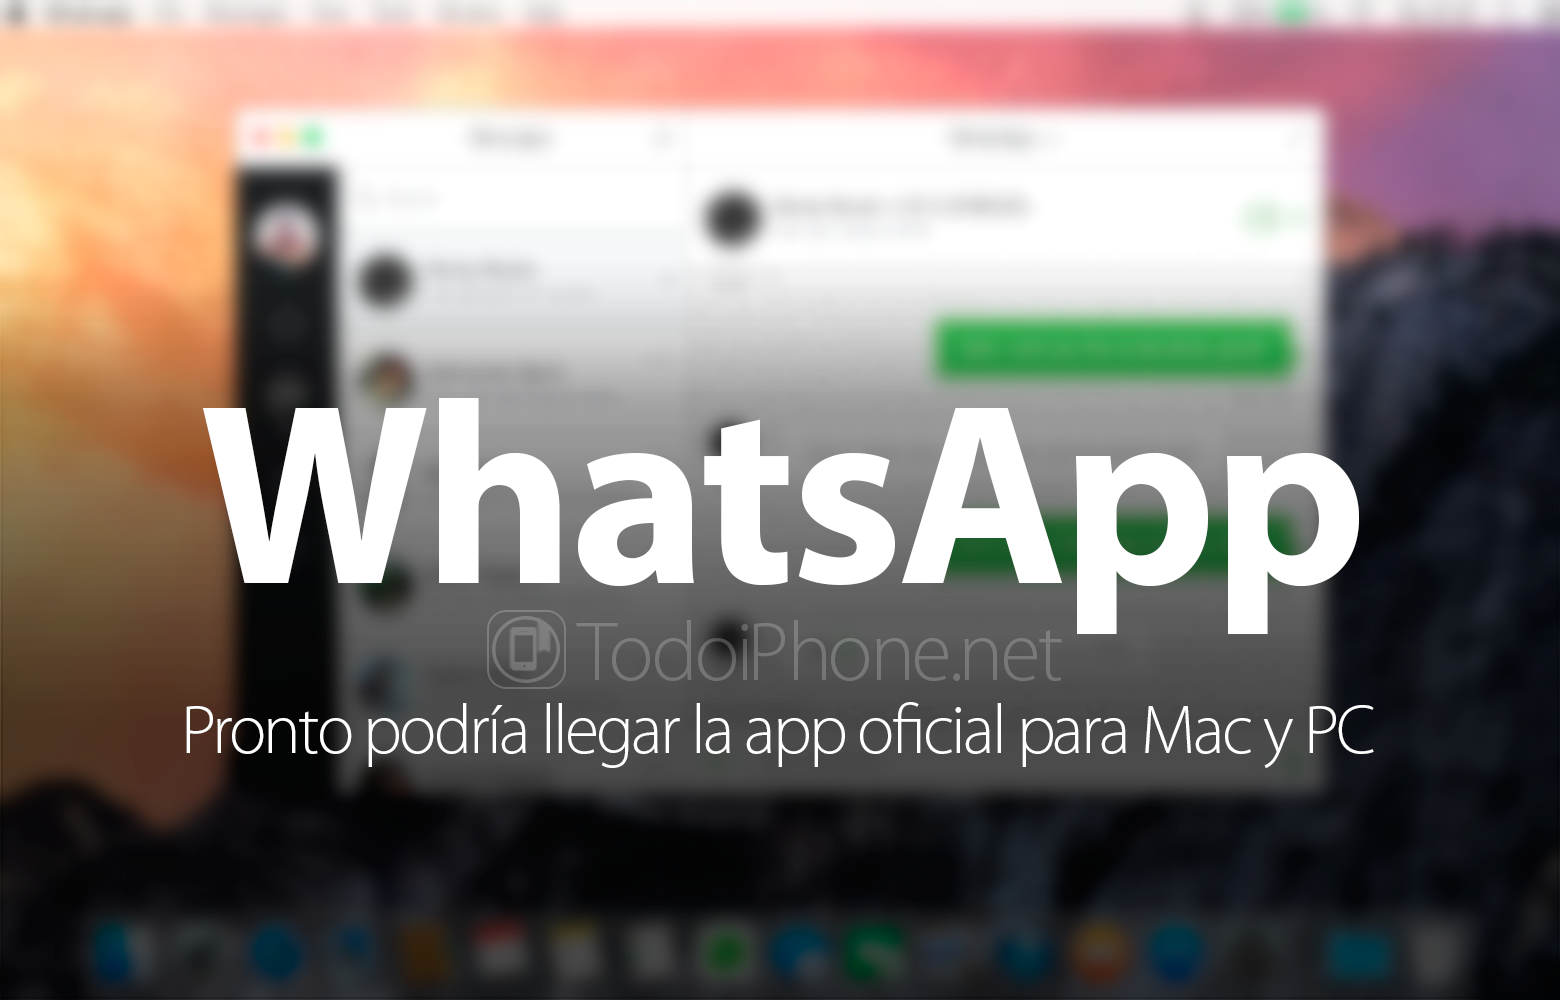 WhatsApp application for Mac and PC may arrive soon 1